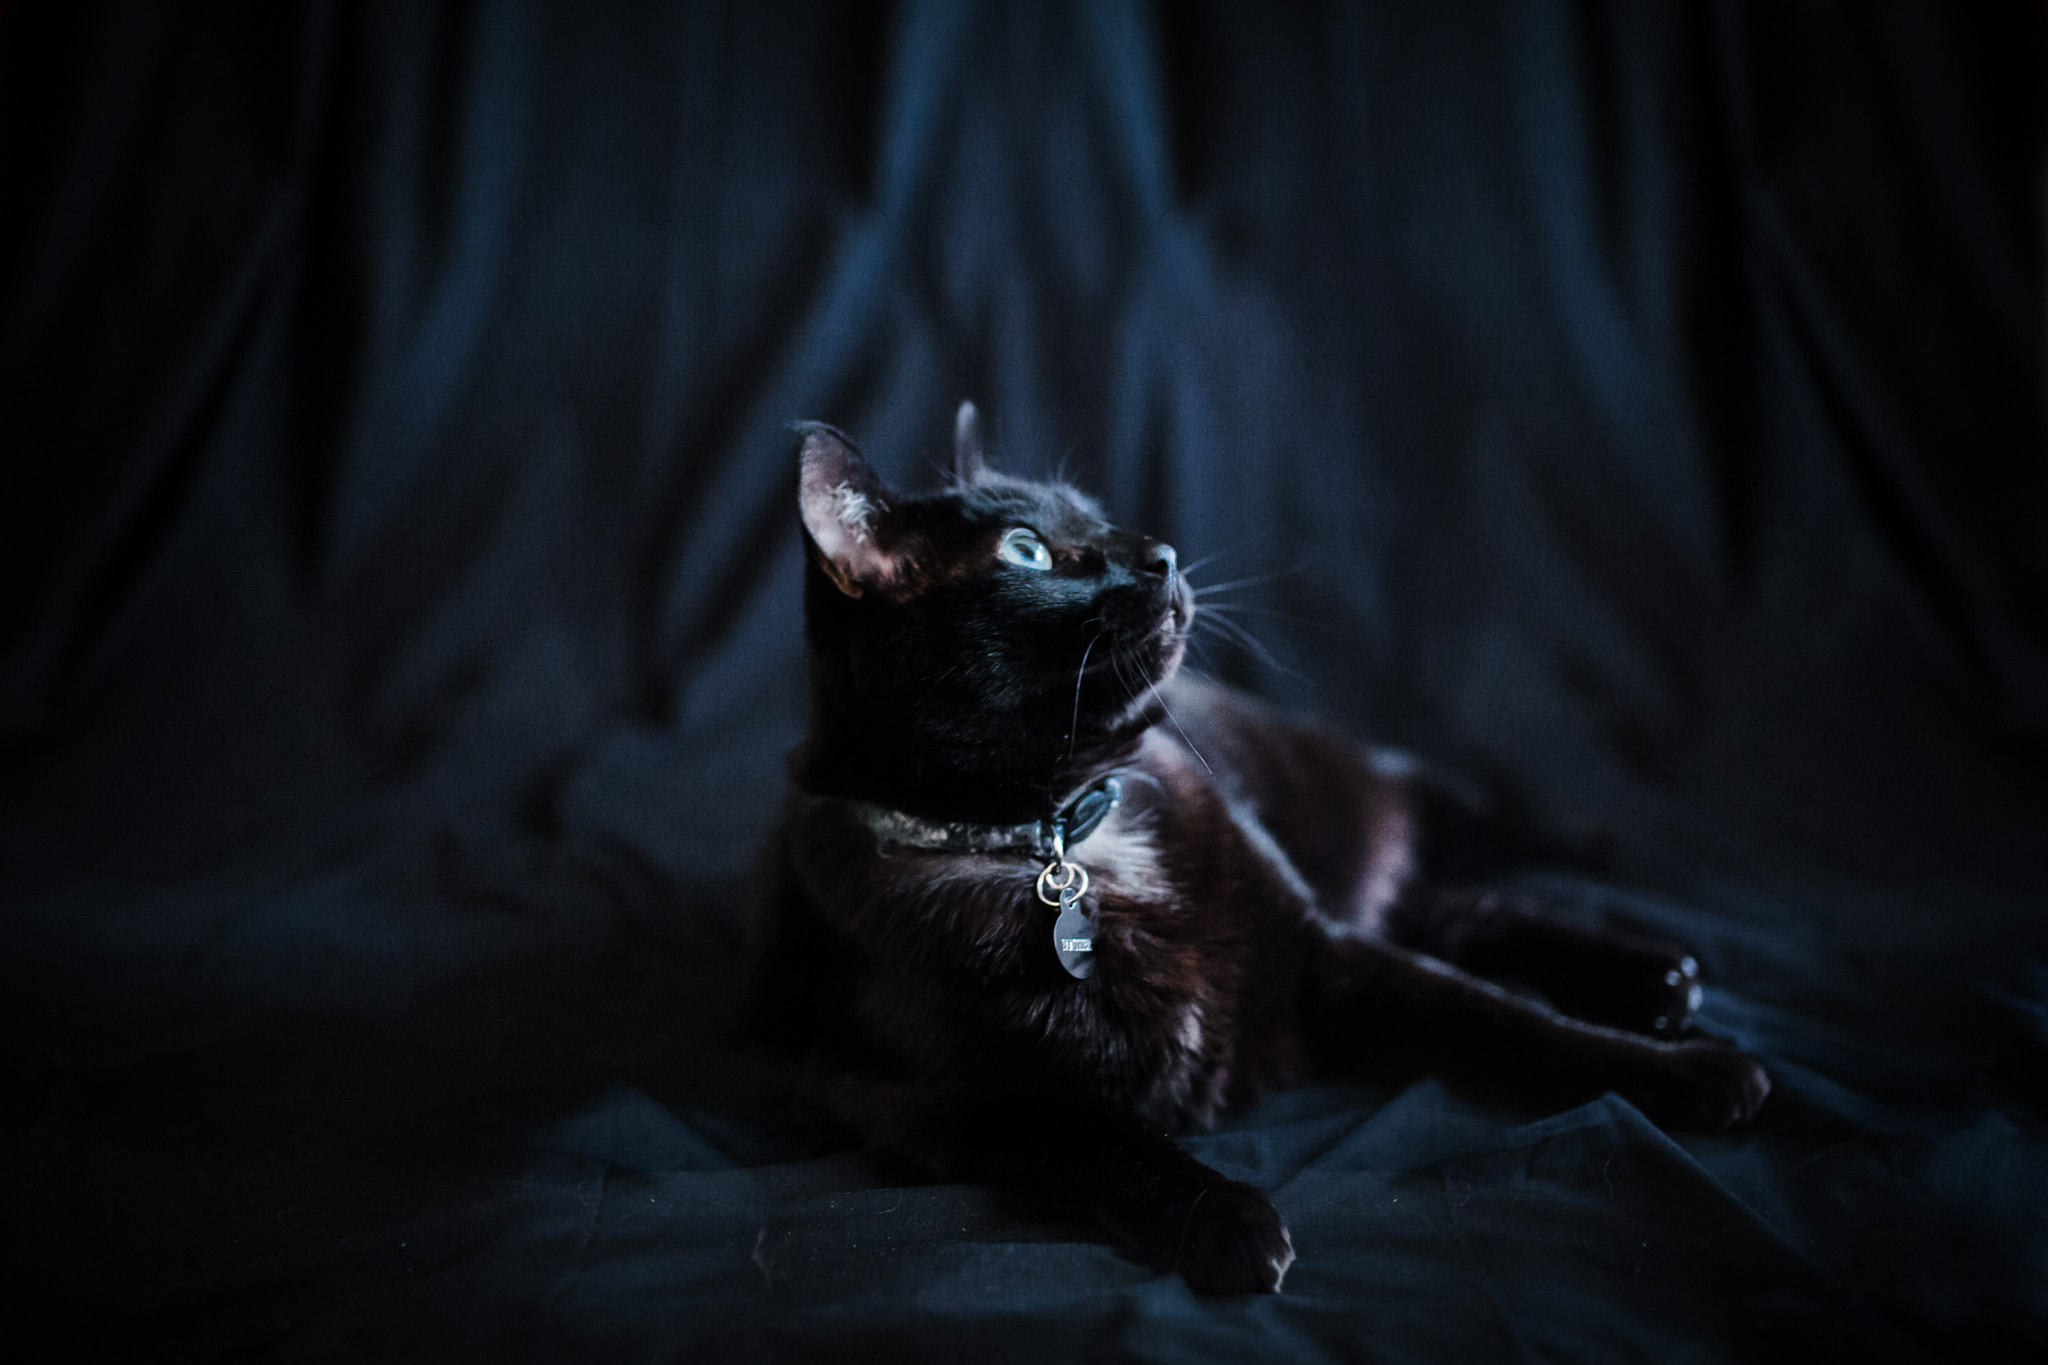 Pet Photography | Lenkaland Photography